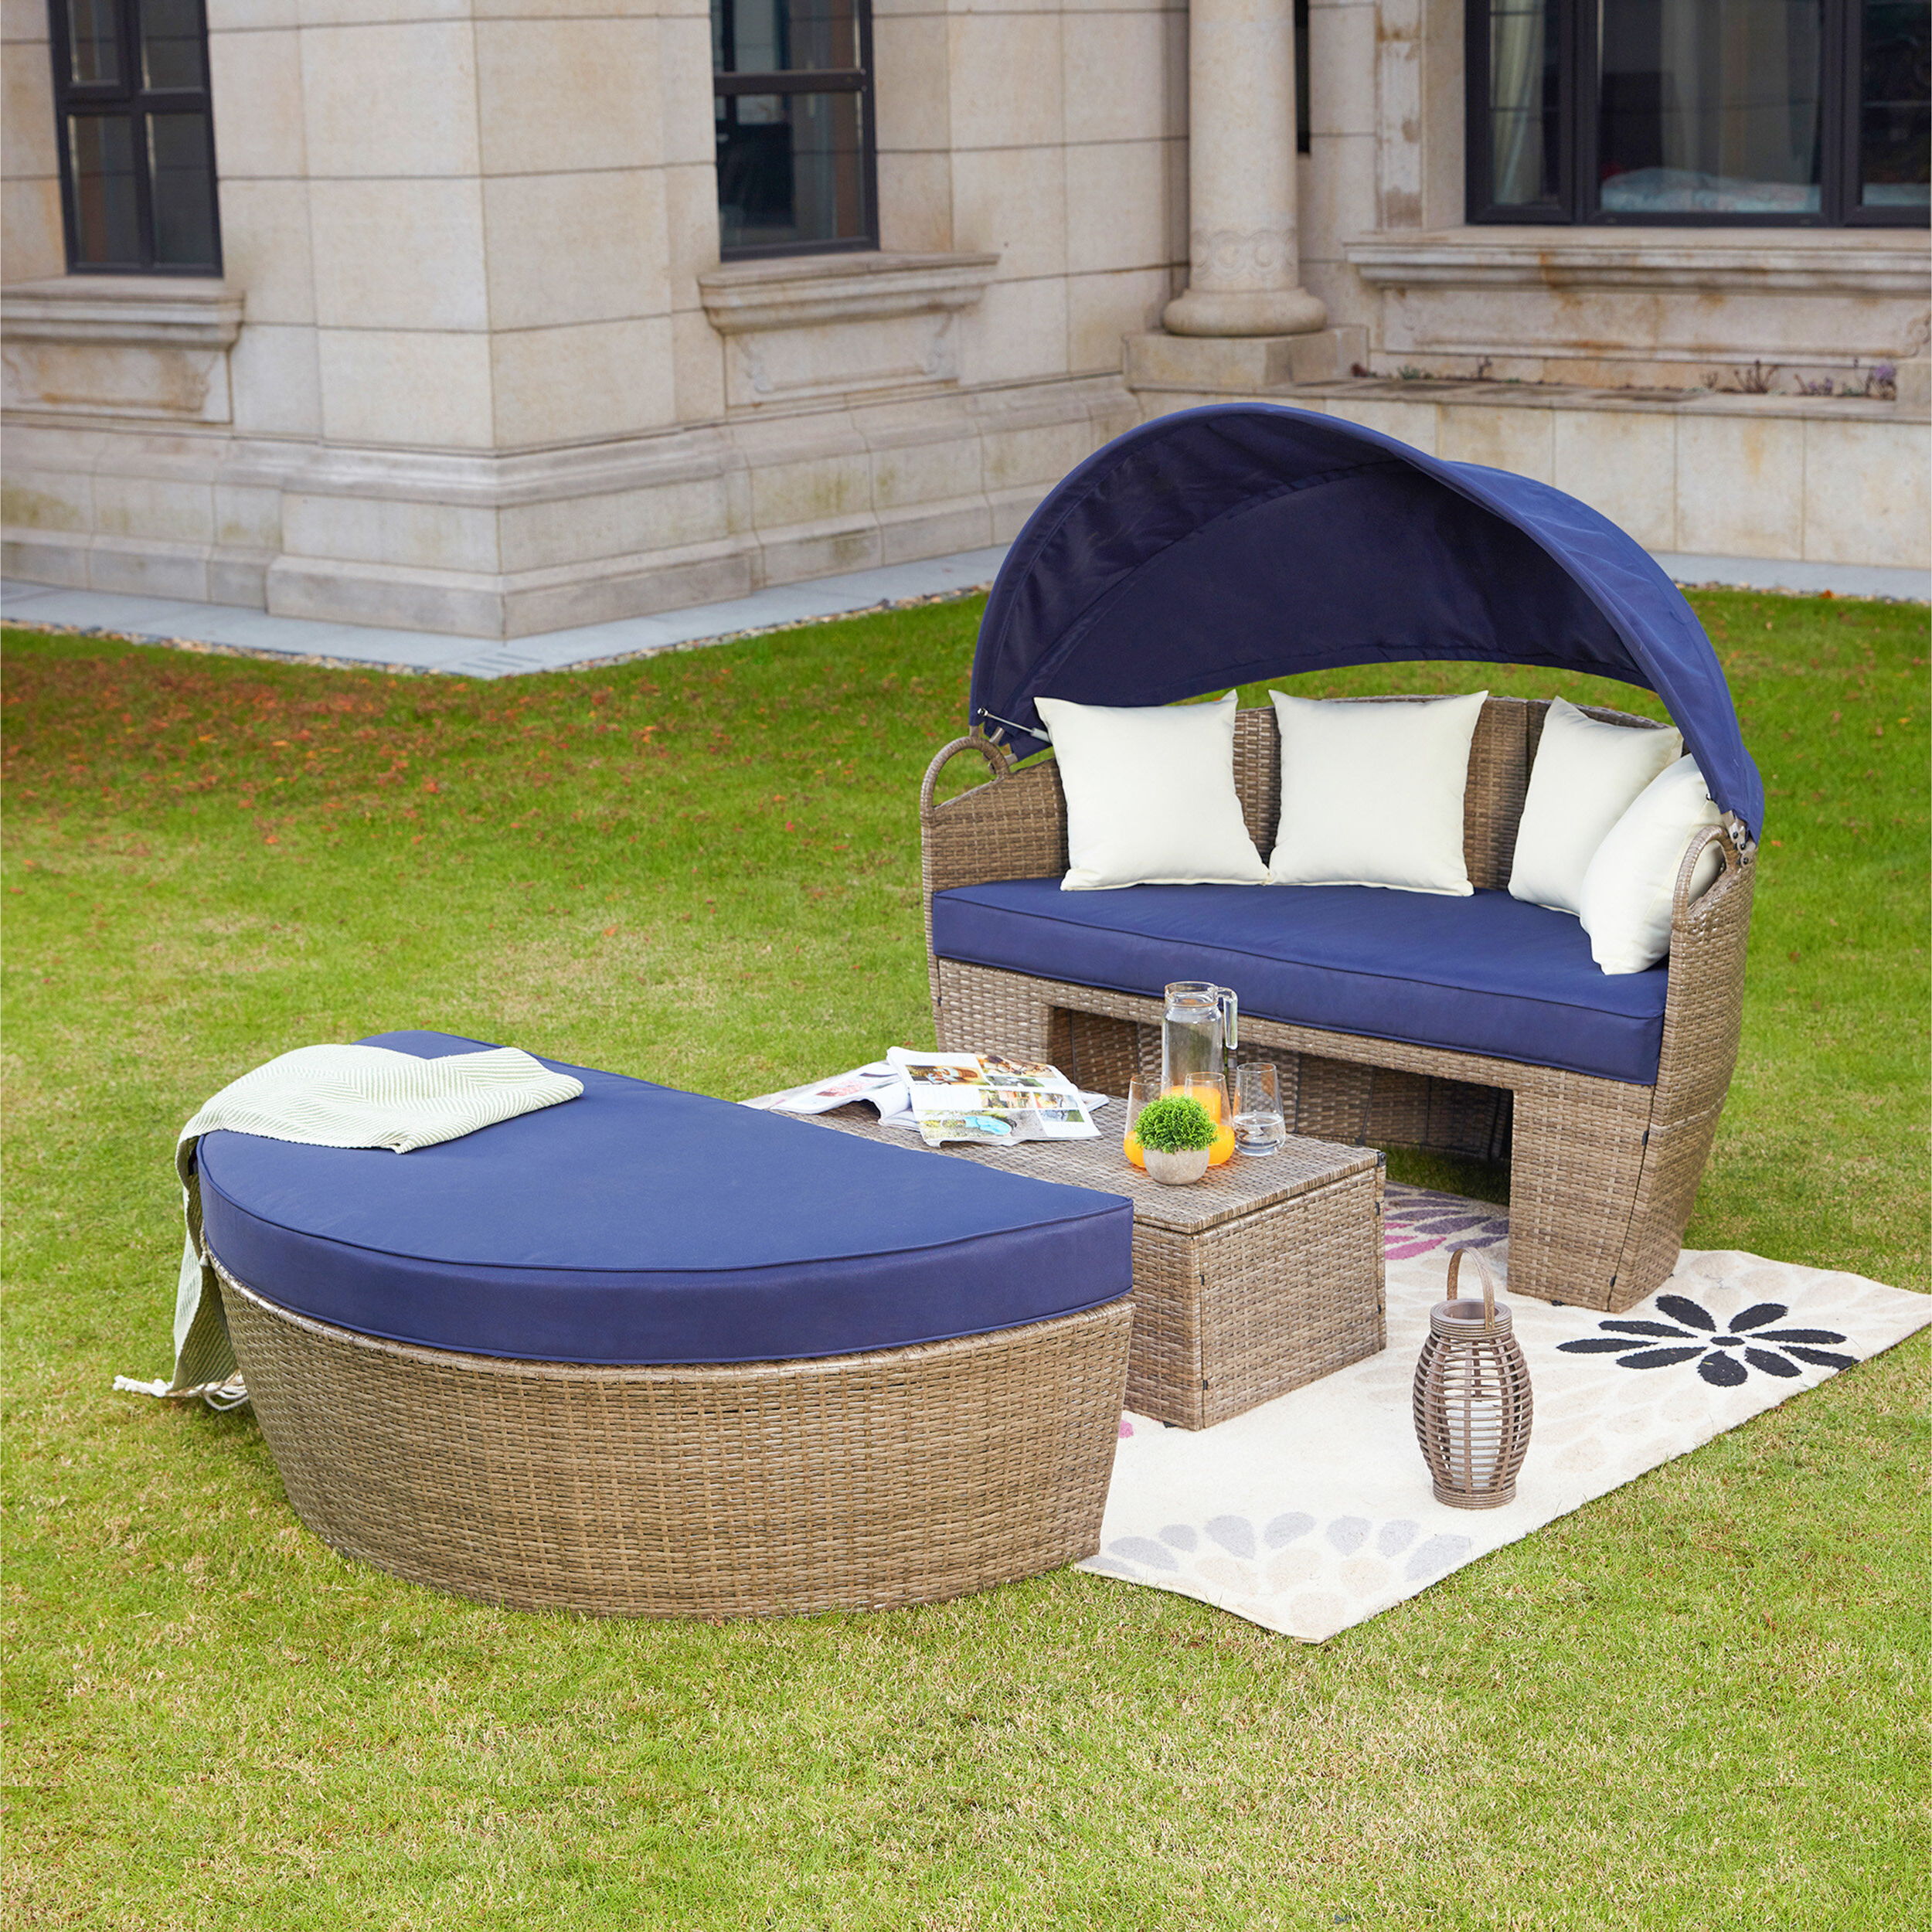 Famous Brentwood Patio Daybeds With Cushions In Fansler Patio Daybed With Cushions (View 10 of 25)